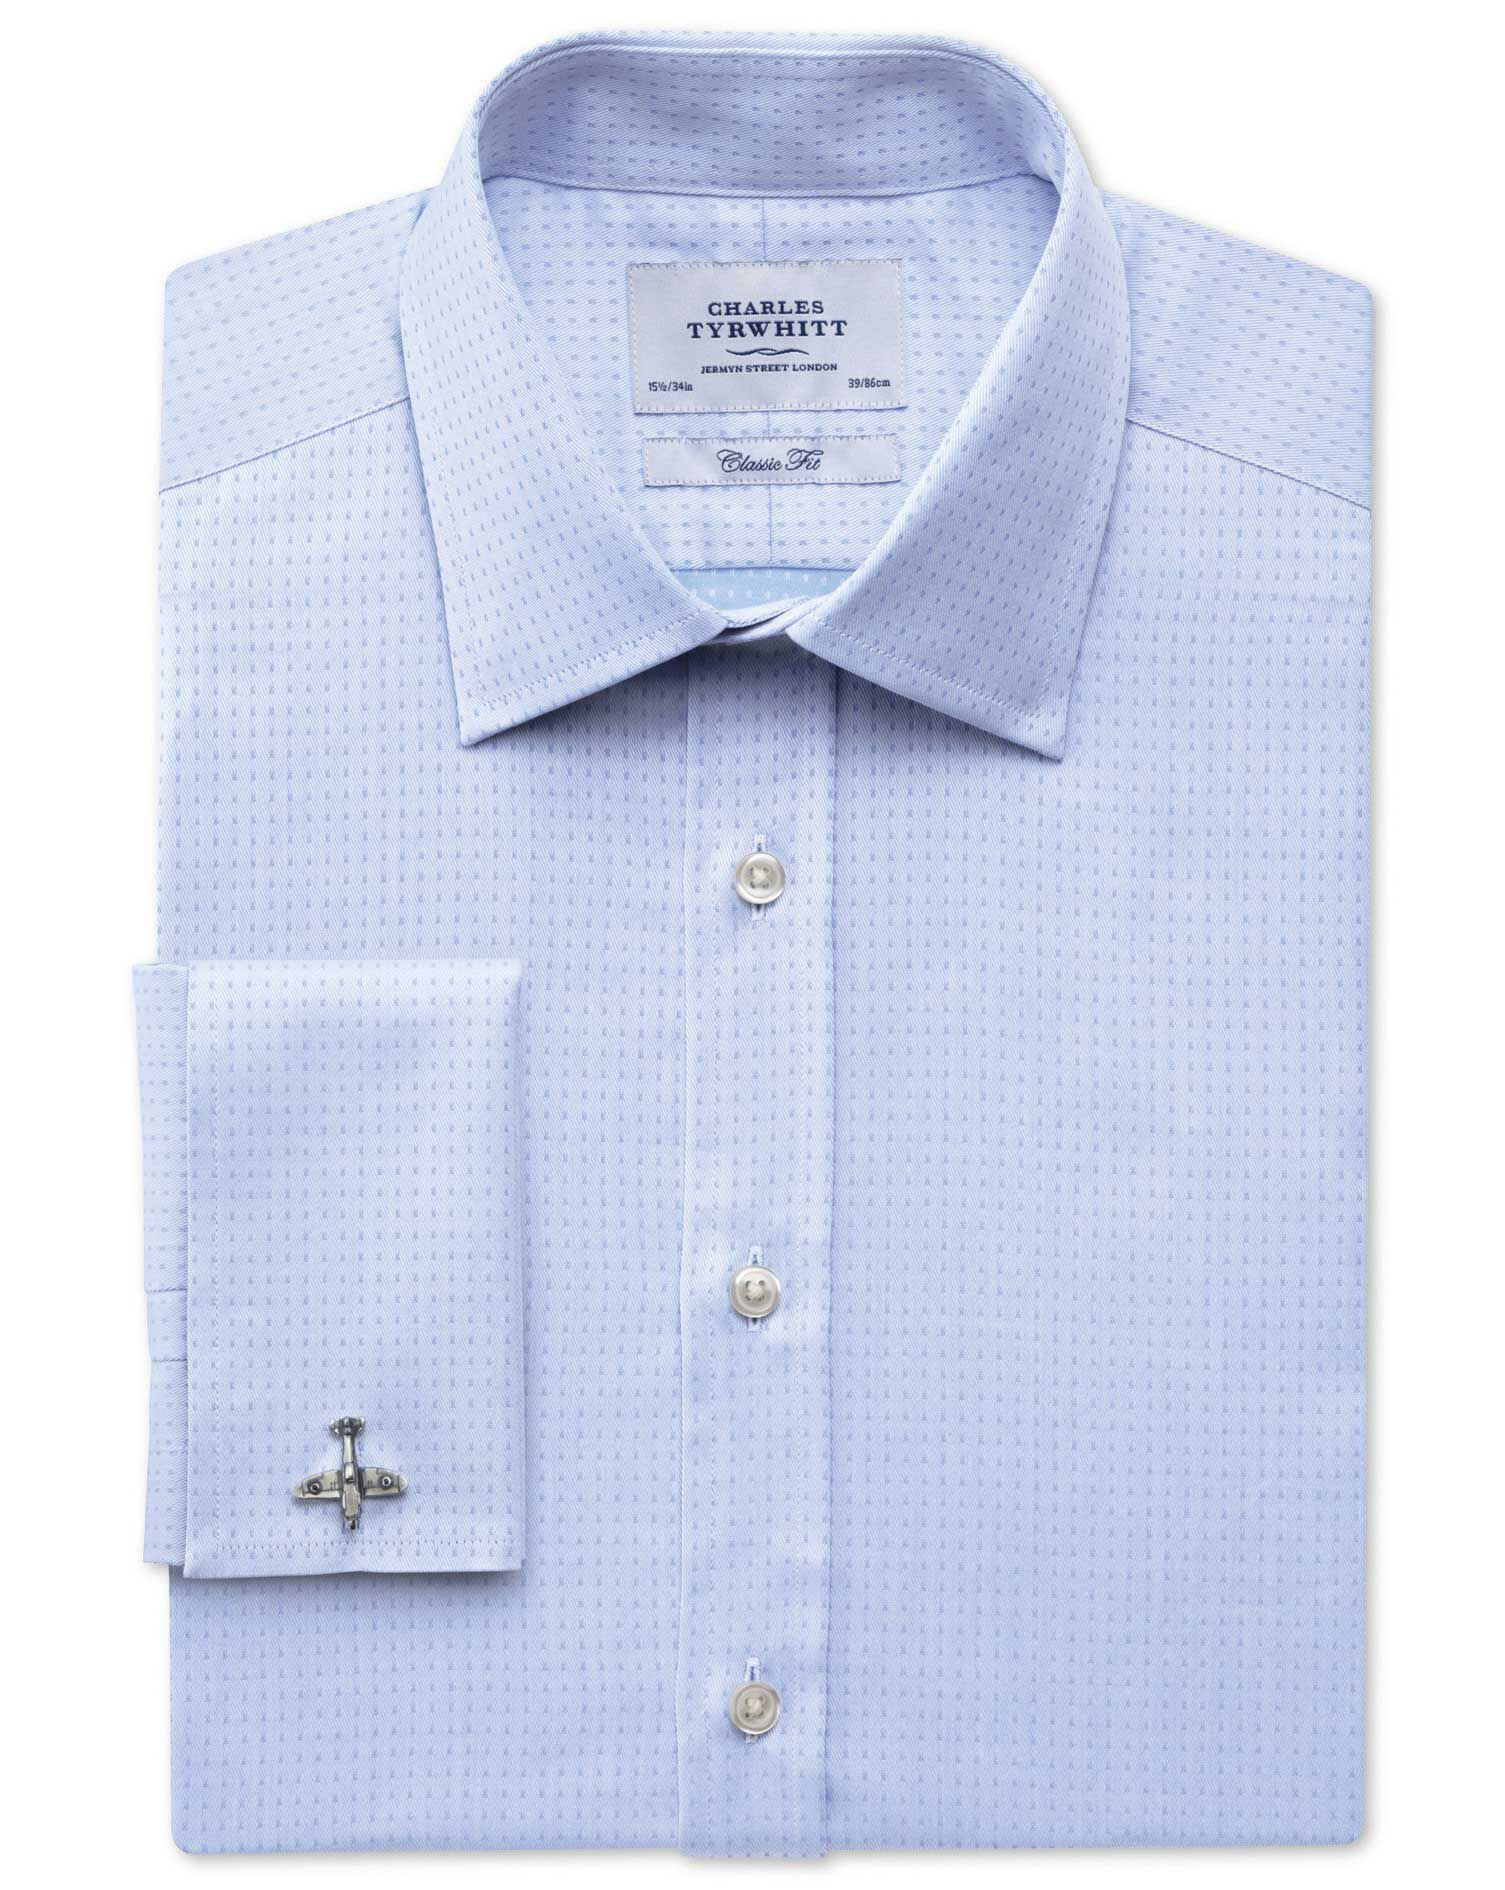 Classic Fit Egyptian Cotton Textured Dobby Sky Blue Formal Shirt Double Cuff Size 16/38 by Charles T